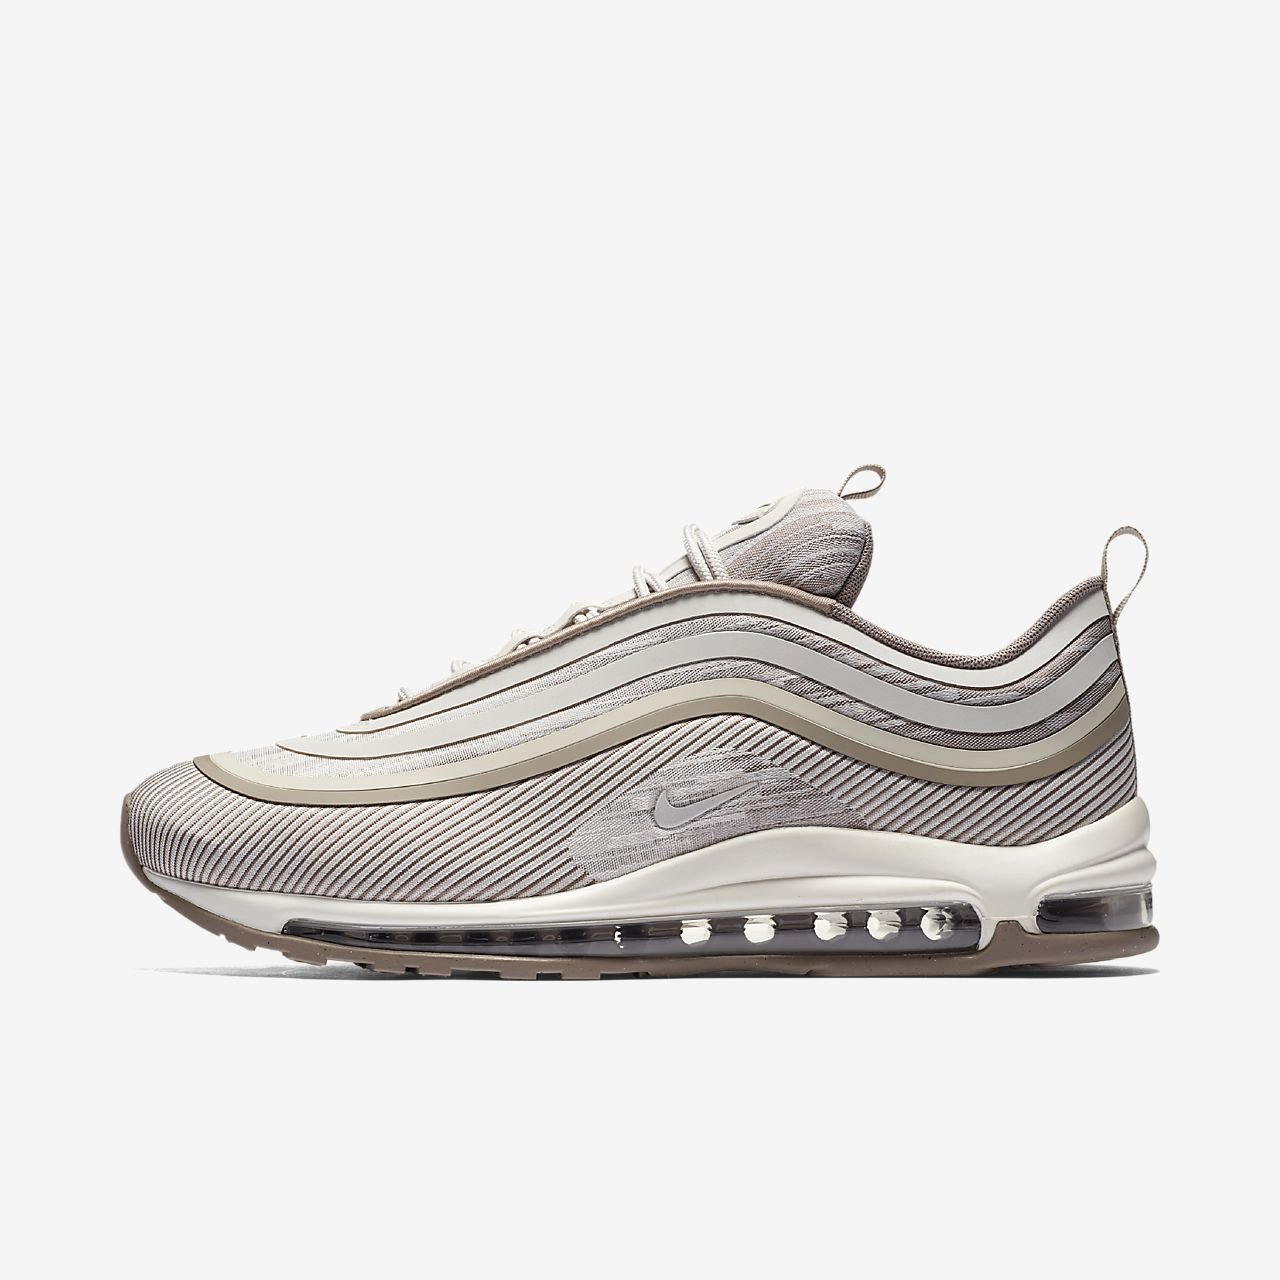 2dd0fcbf6c7ab Nike Air Max 97 Ultra '17 Men's Shoe. Nike.com SG